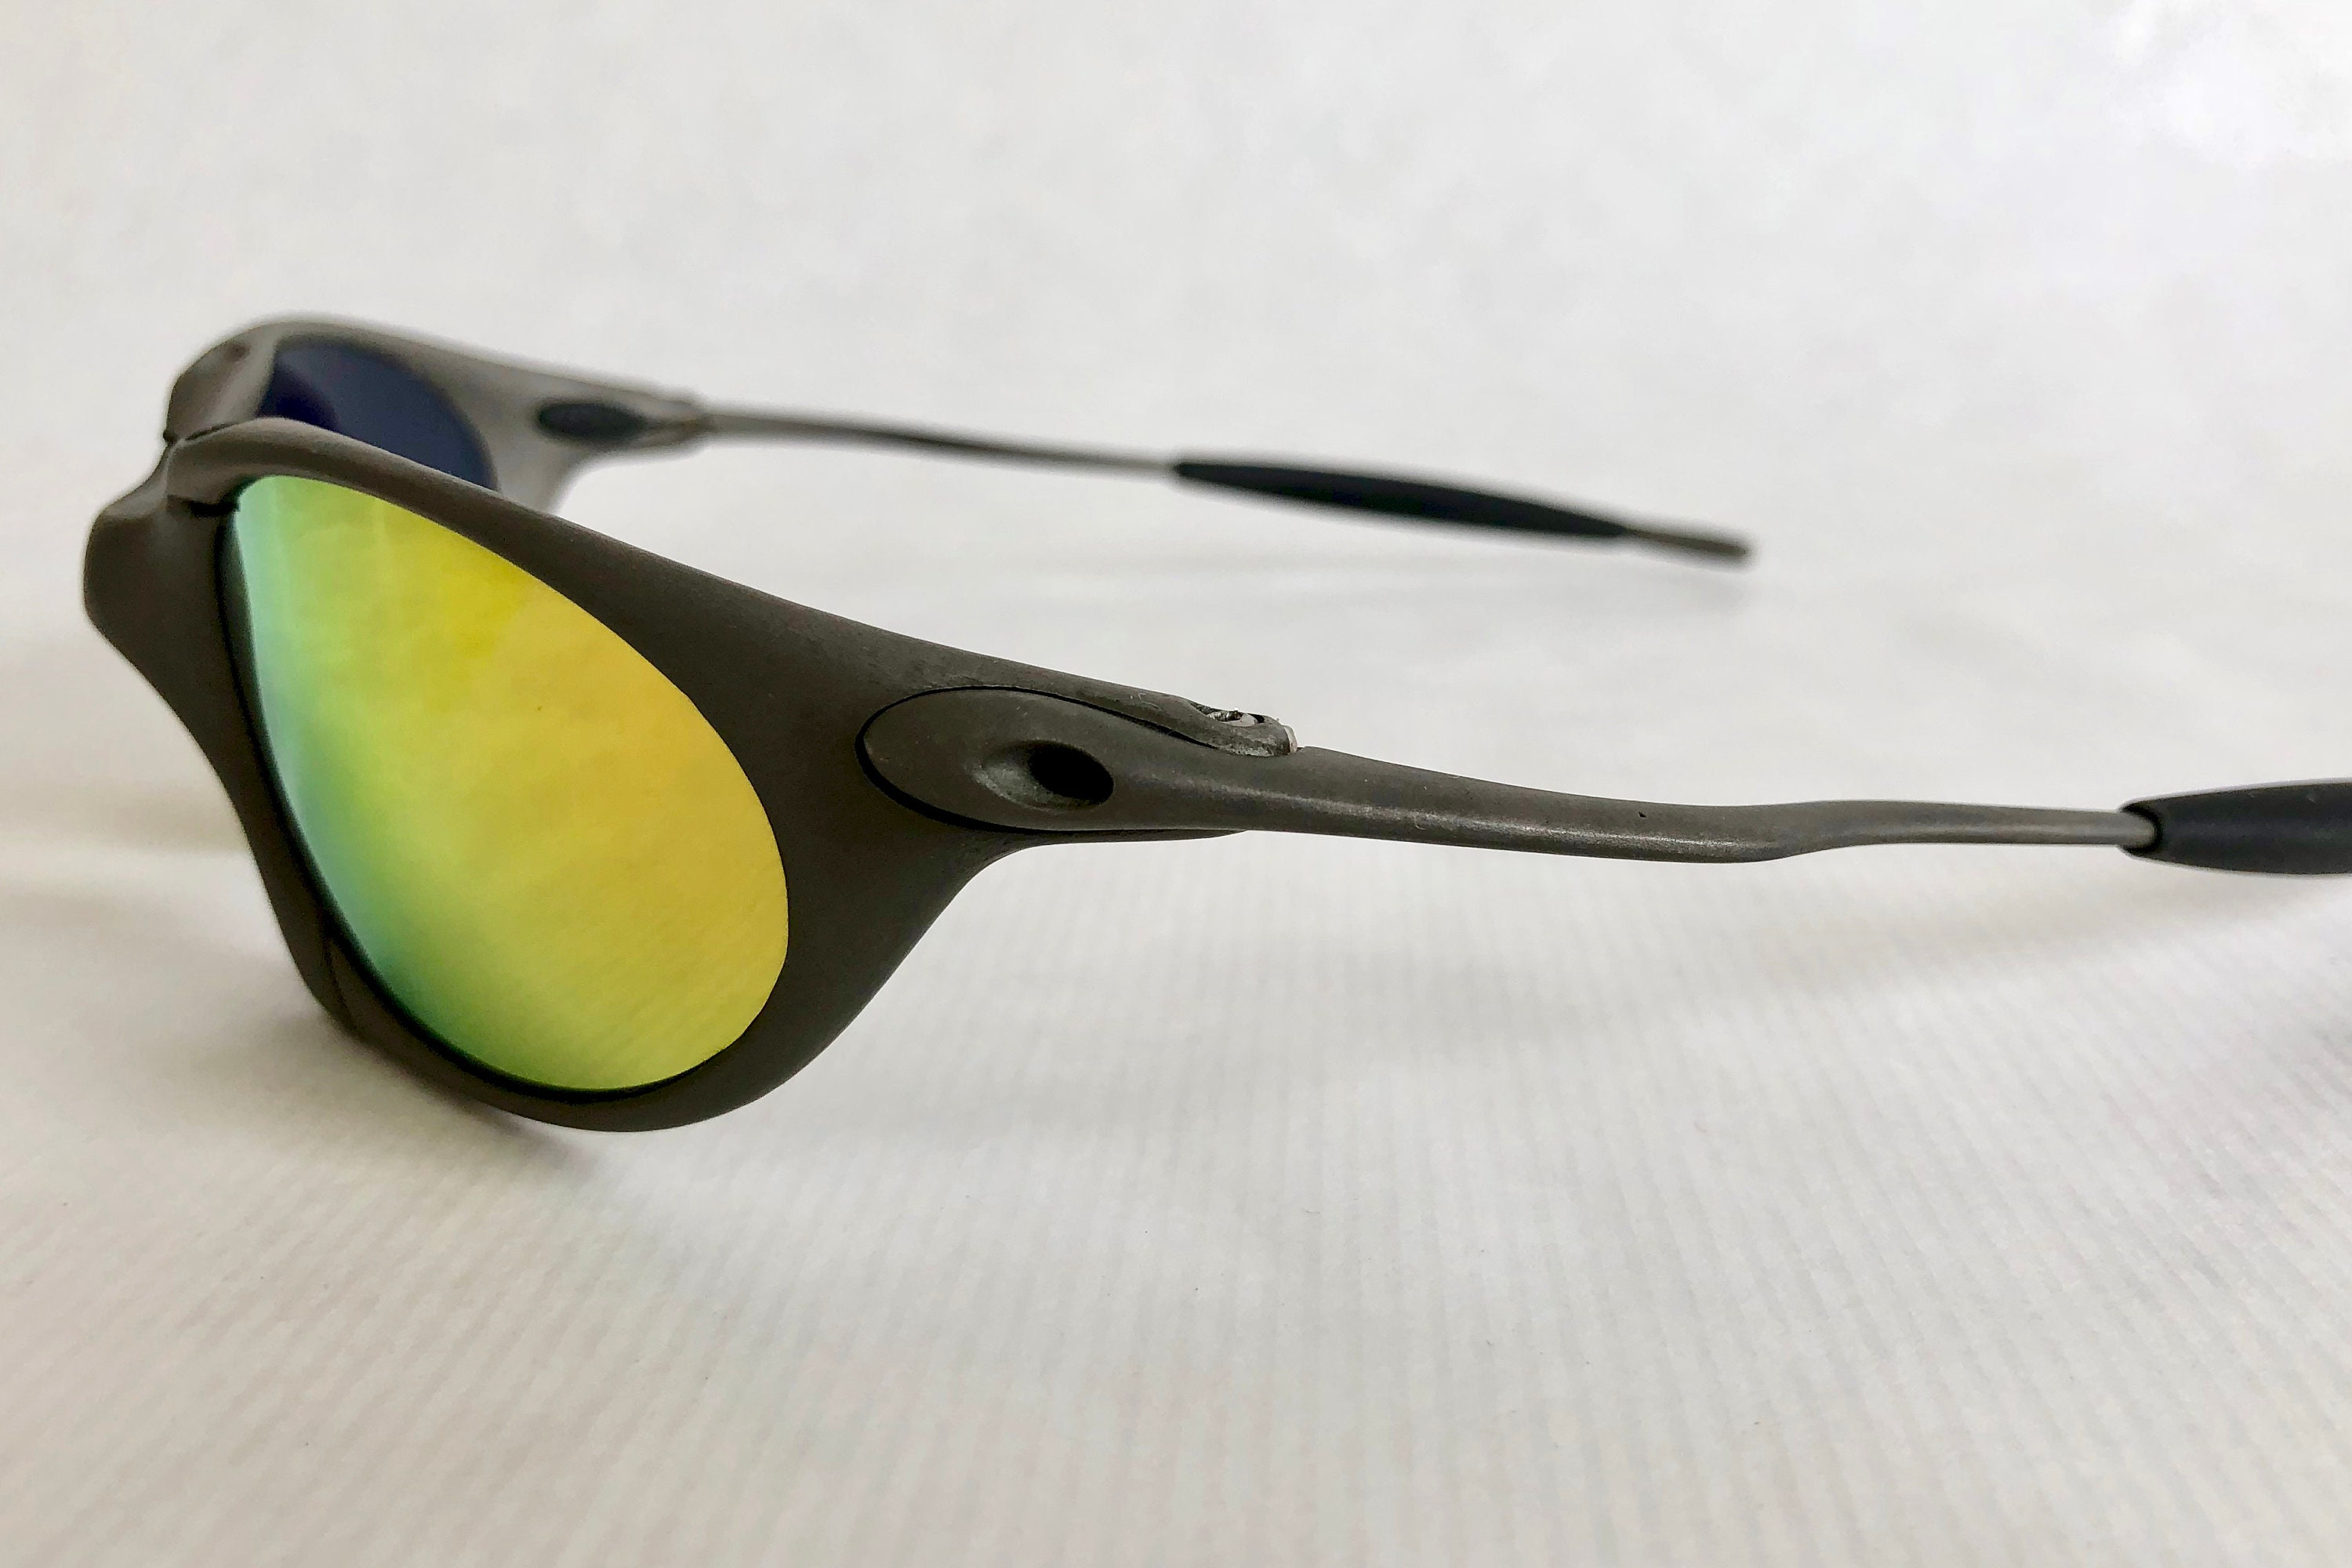 673e185e38 Shipping to   Free. Calculate Shipping. Loading Add to cart. Ask a  question. Details    Shipping   Policies. Oakley X Metal Romeo 1 Plasma  Vintage ...